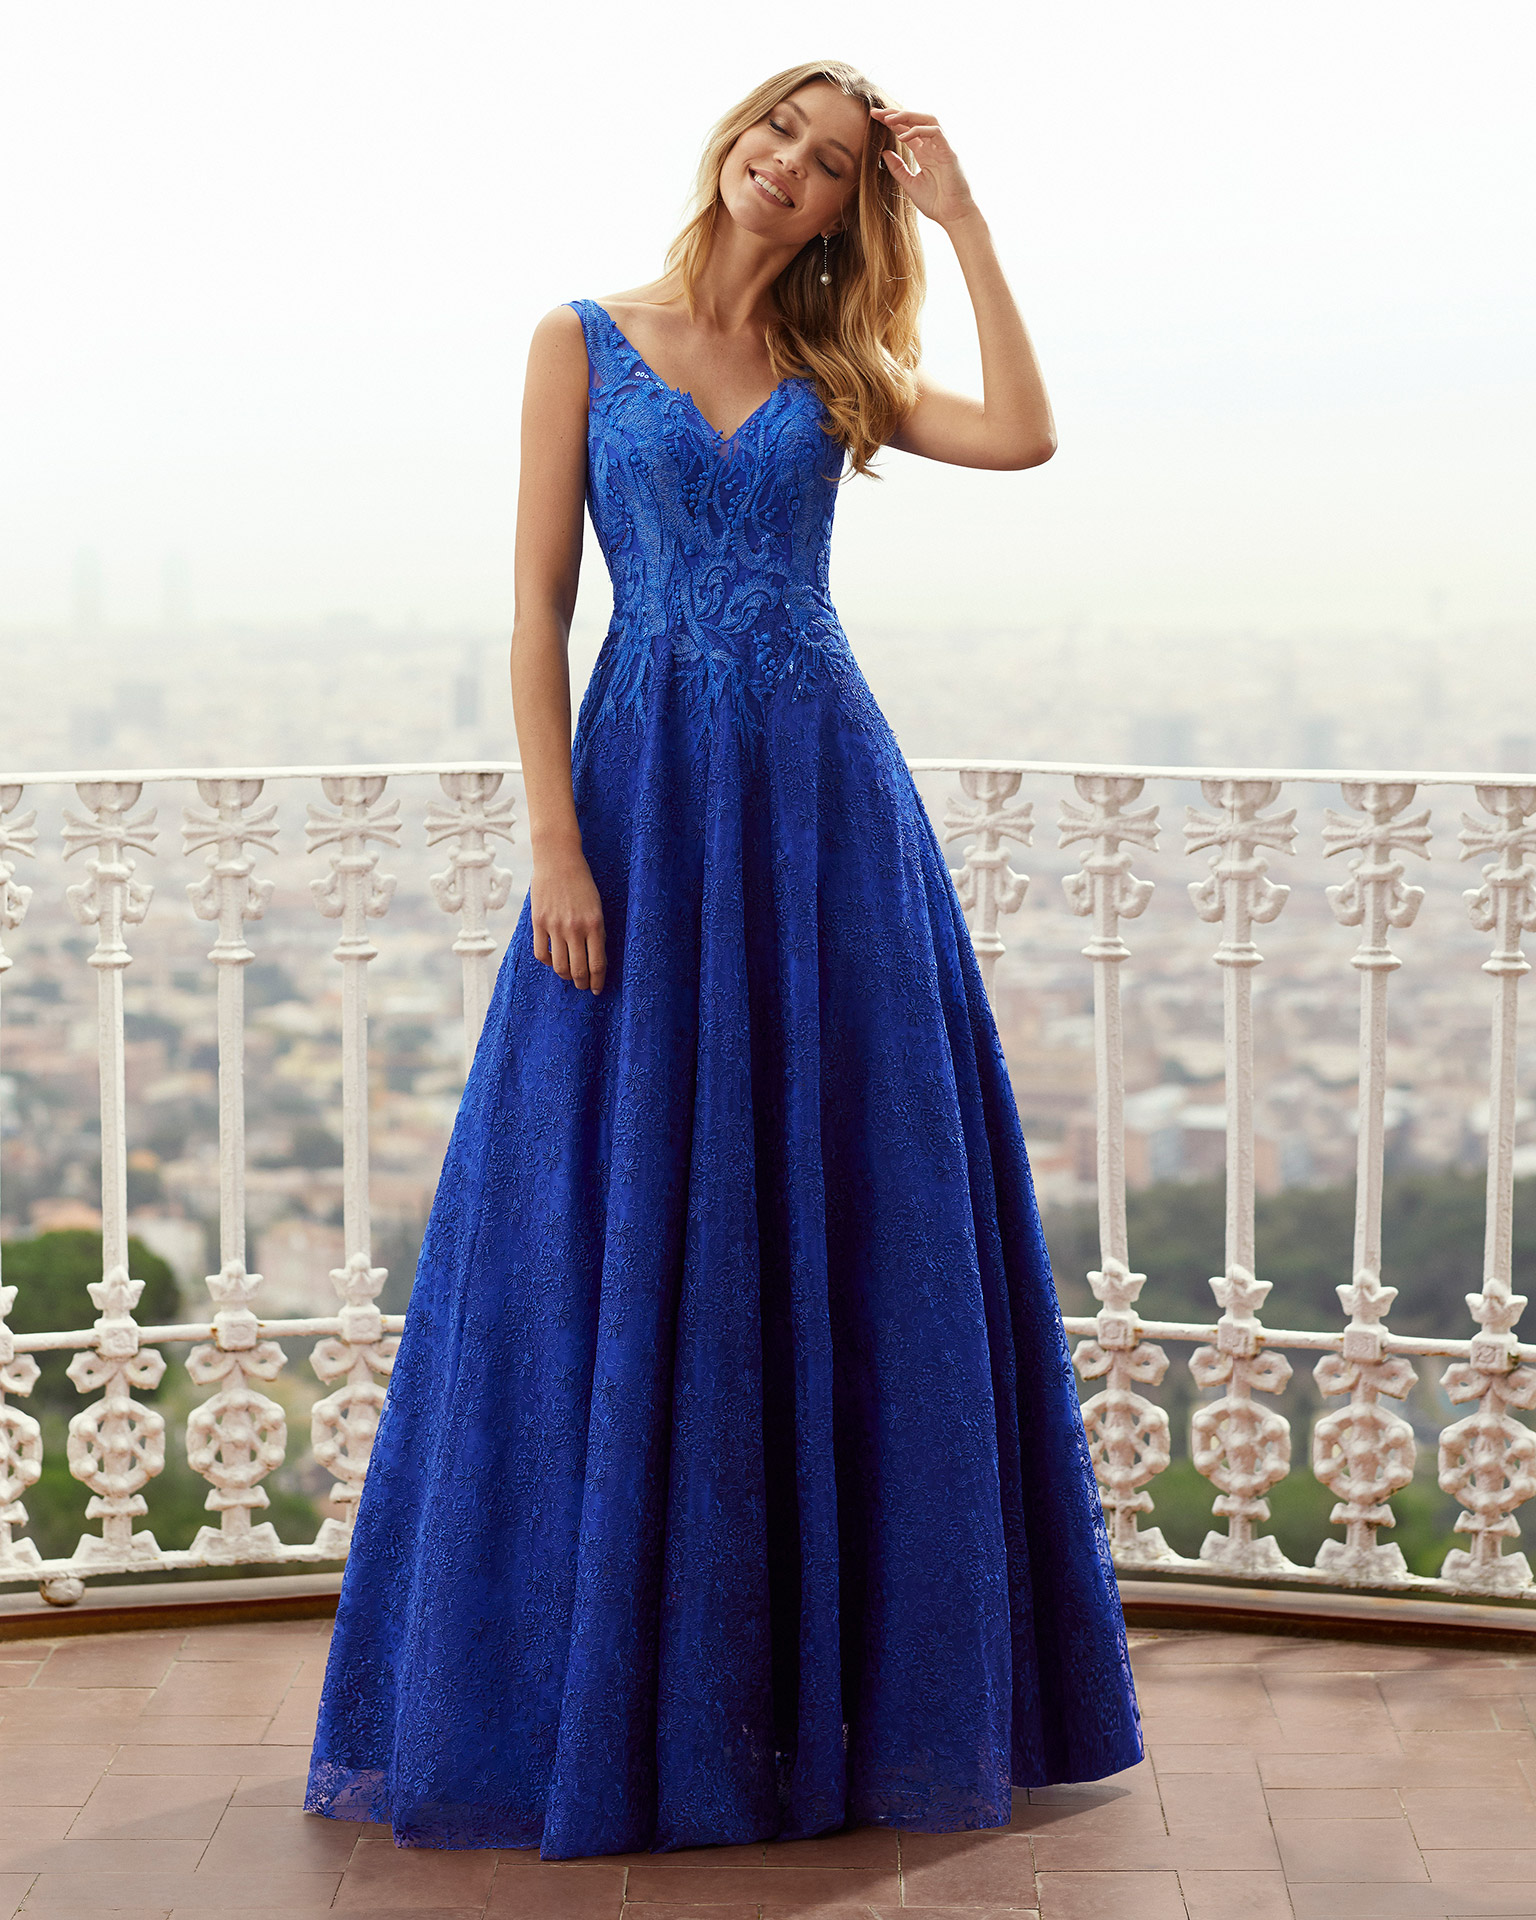 Lace cocktail dress. With V-neckline and V-back. With sequin detail on shoulder straps. With shawl. 2021 MARFIL BARCELONA Collection.